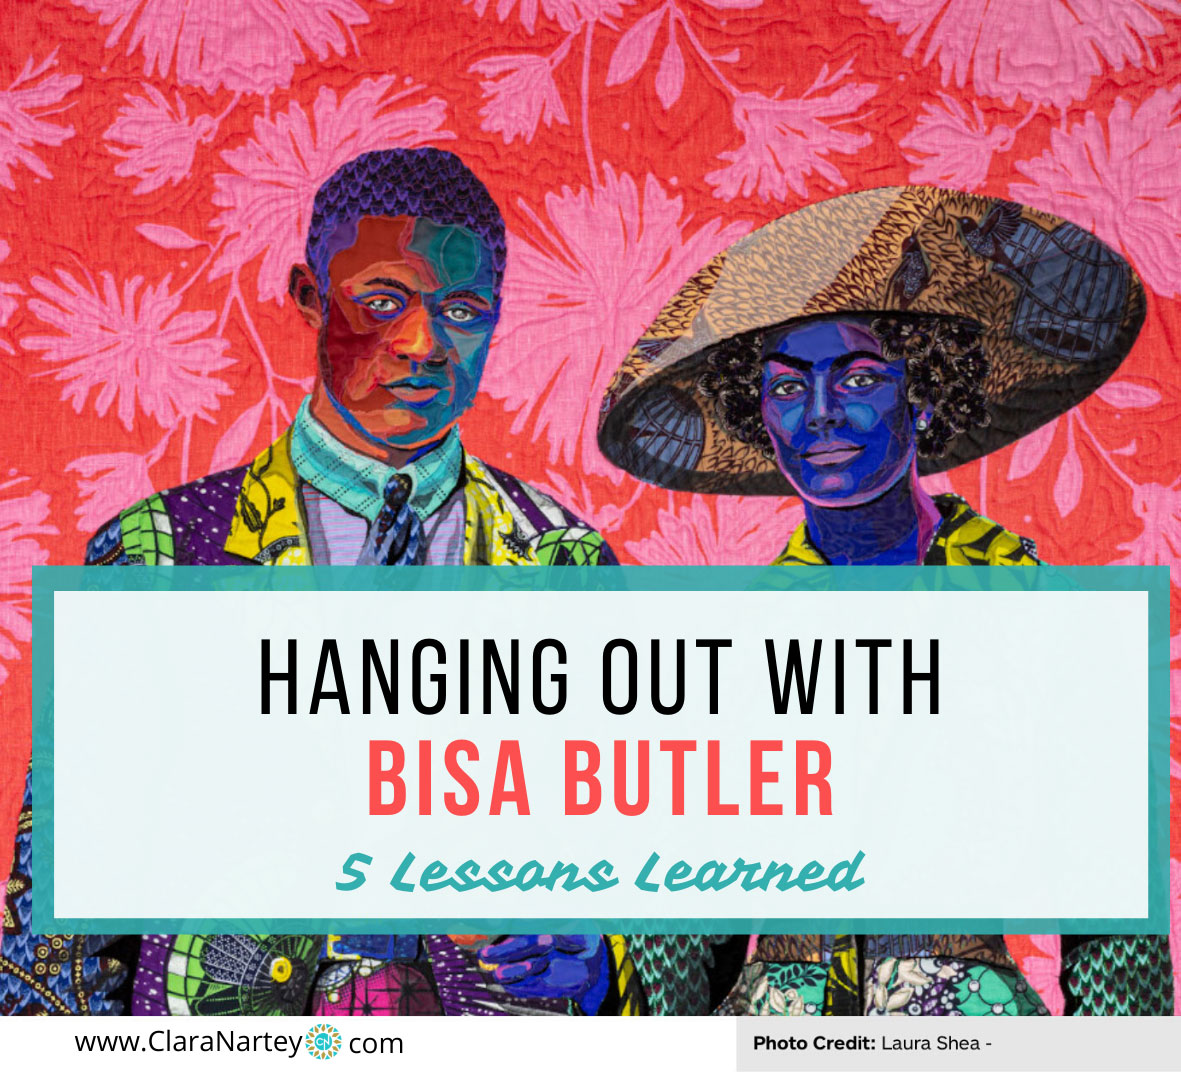 Hanging out with Bisa Butler